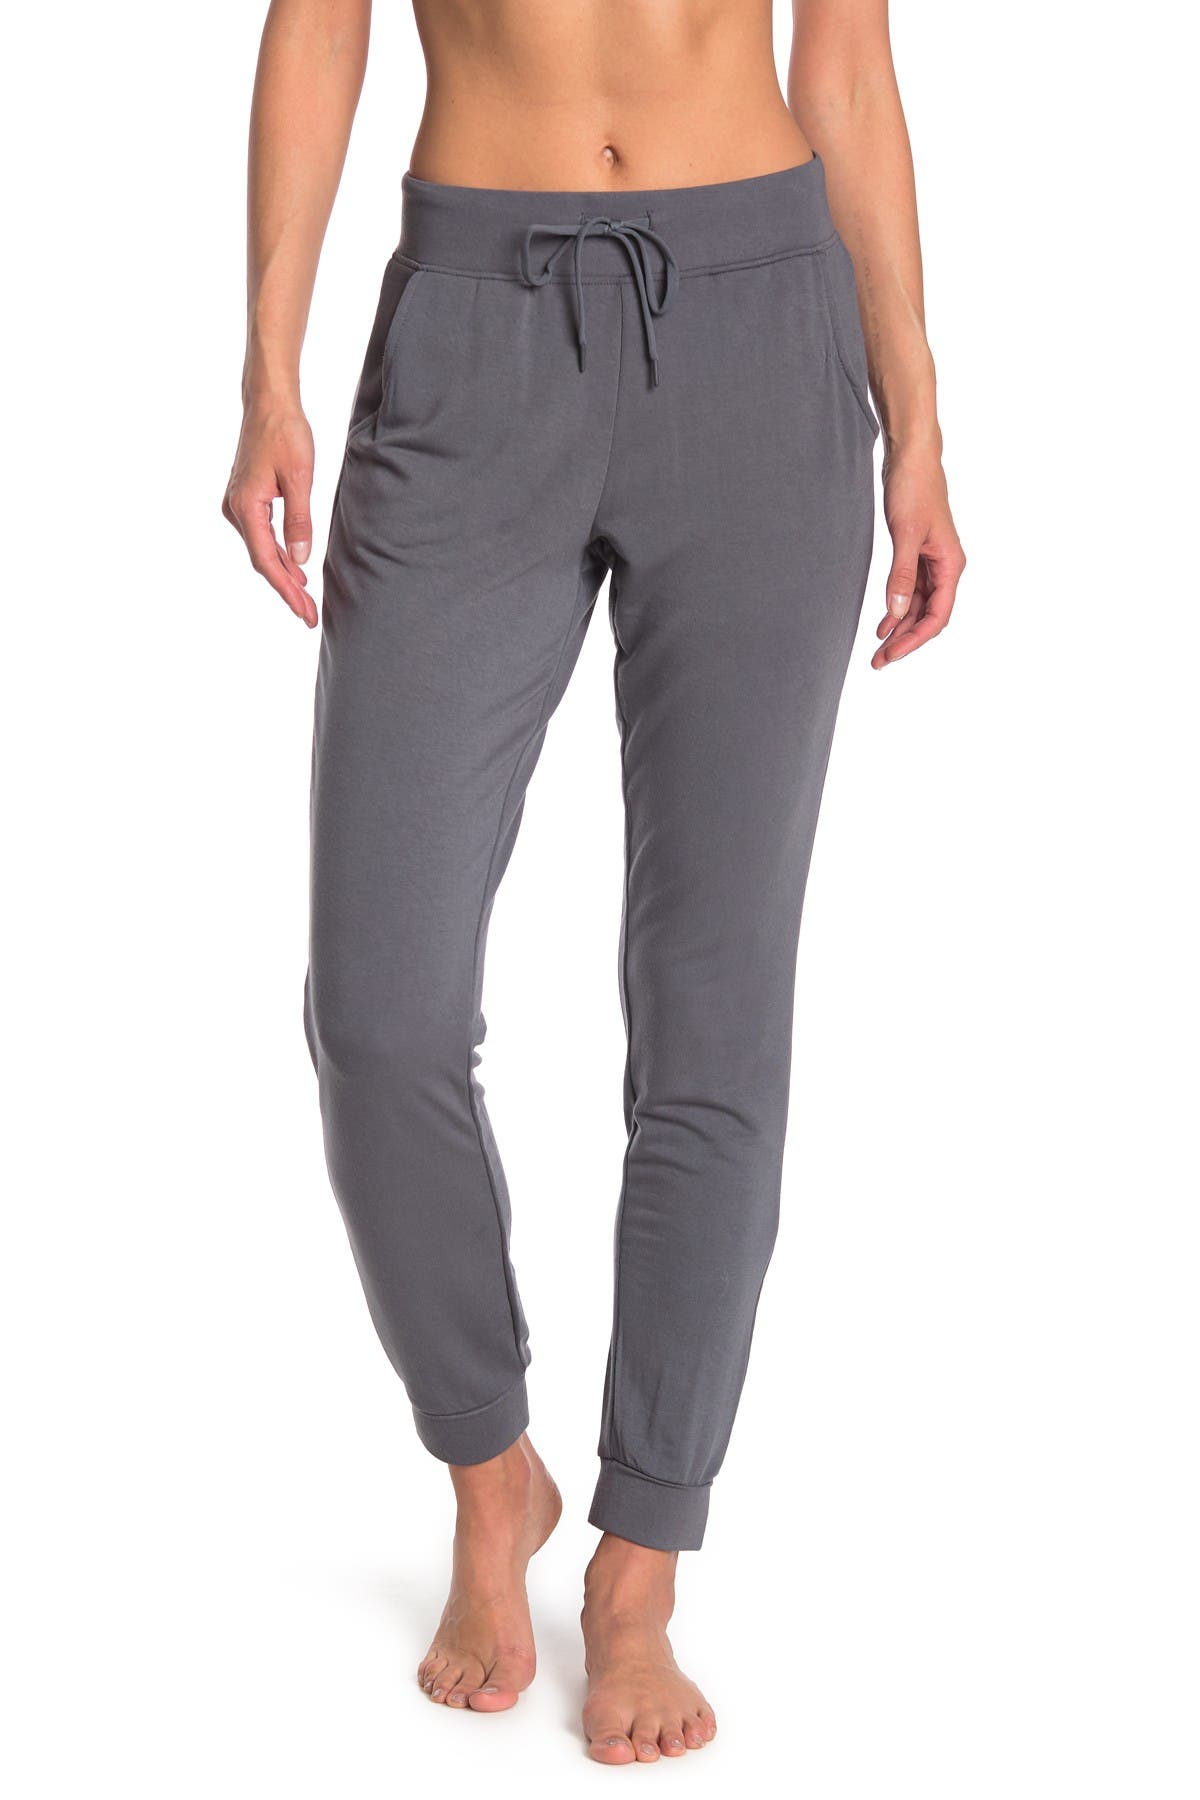 Image of 90 Degree By Reflex Side Pocket Joggers